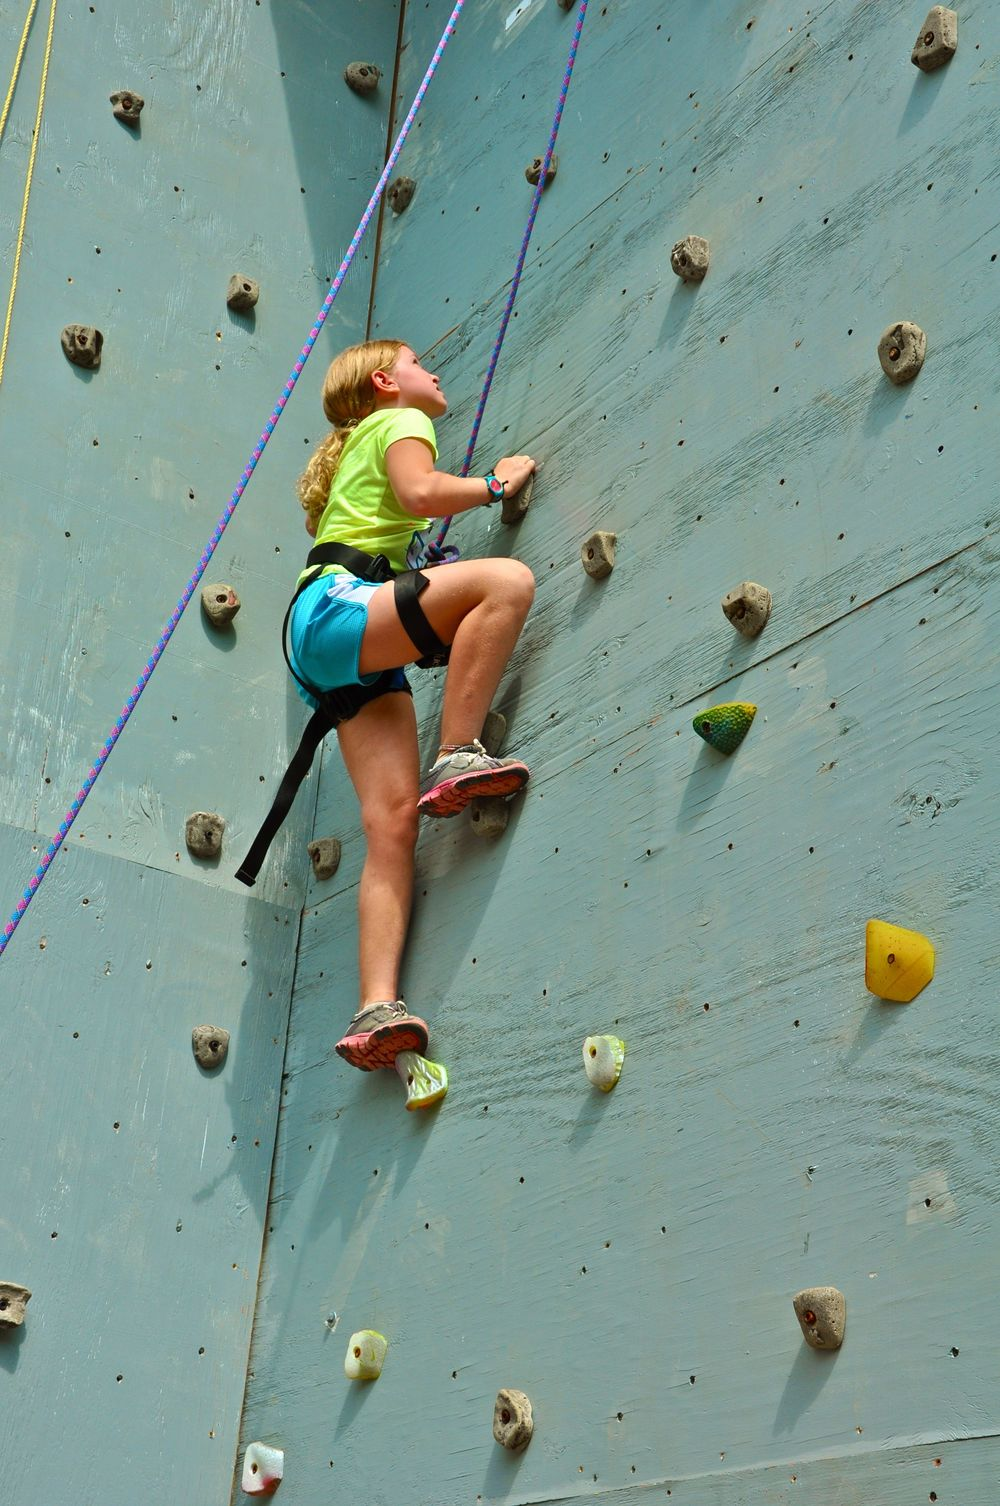 lydia-defys-her-fear-of-heights-with-climbing-the-climbing-wall-in-less-than-a-minute.jpg